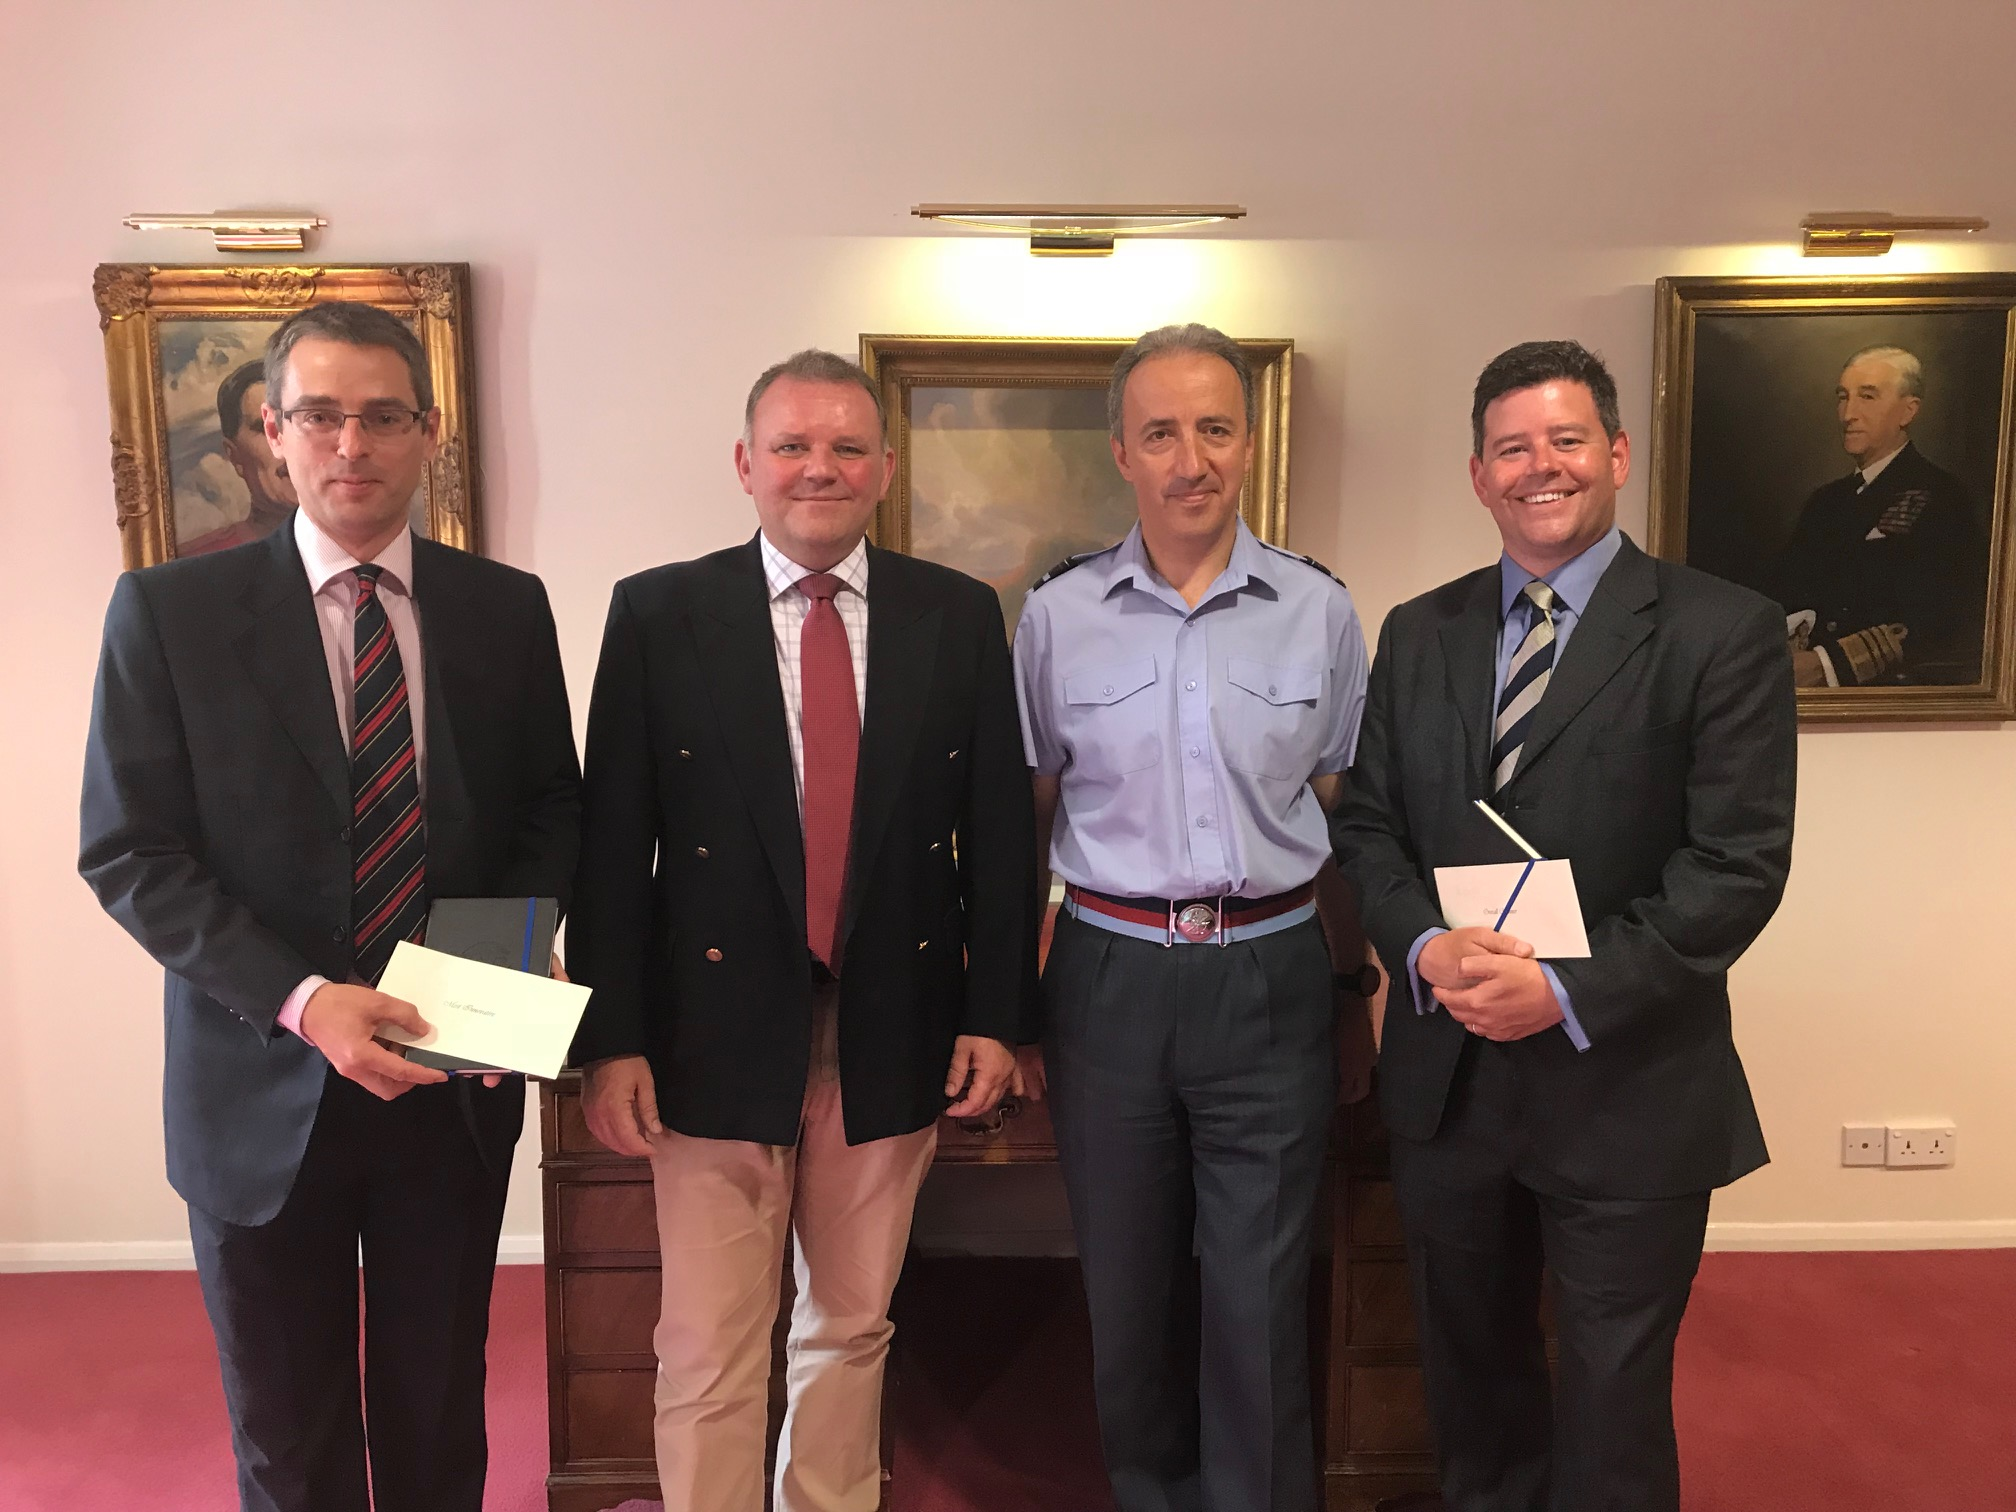 AVM Luck (Comdt JSCSC) and Carl Gorton (Dep Hd Training NSC) awarding prizes to Ant Sharman (best overall essay) and Andy Bell (most innovative) on 19 Jul 18.